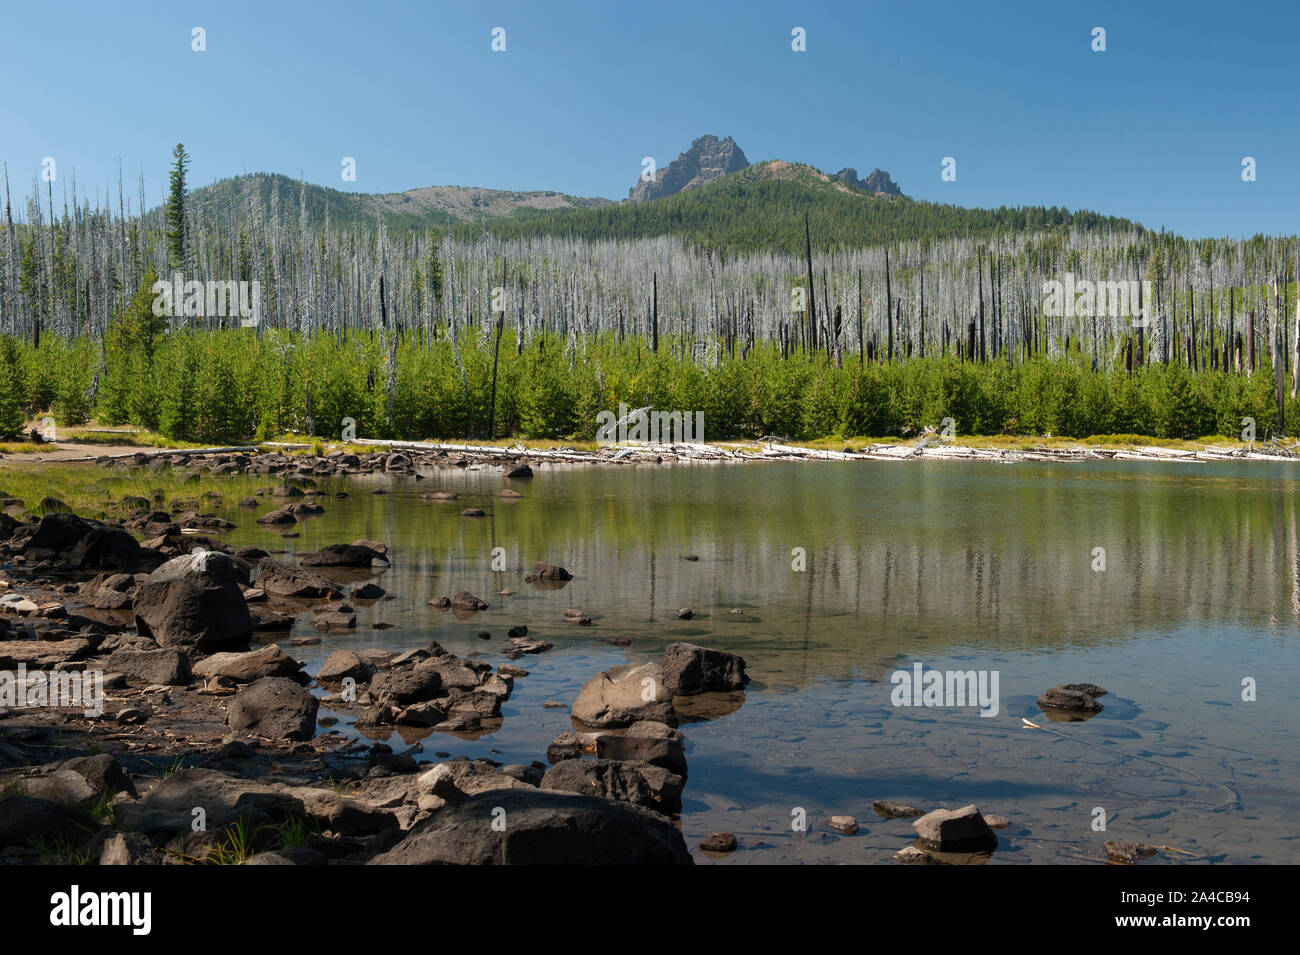 The east side of Three Fingered Jack, in Oregon's Mt. Jefferson Wilderness, as seen from Jack Lake. Stock Photo